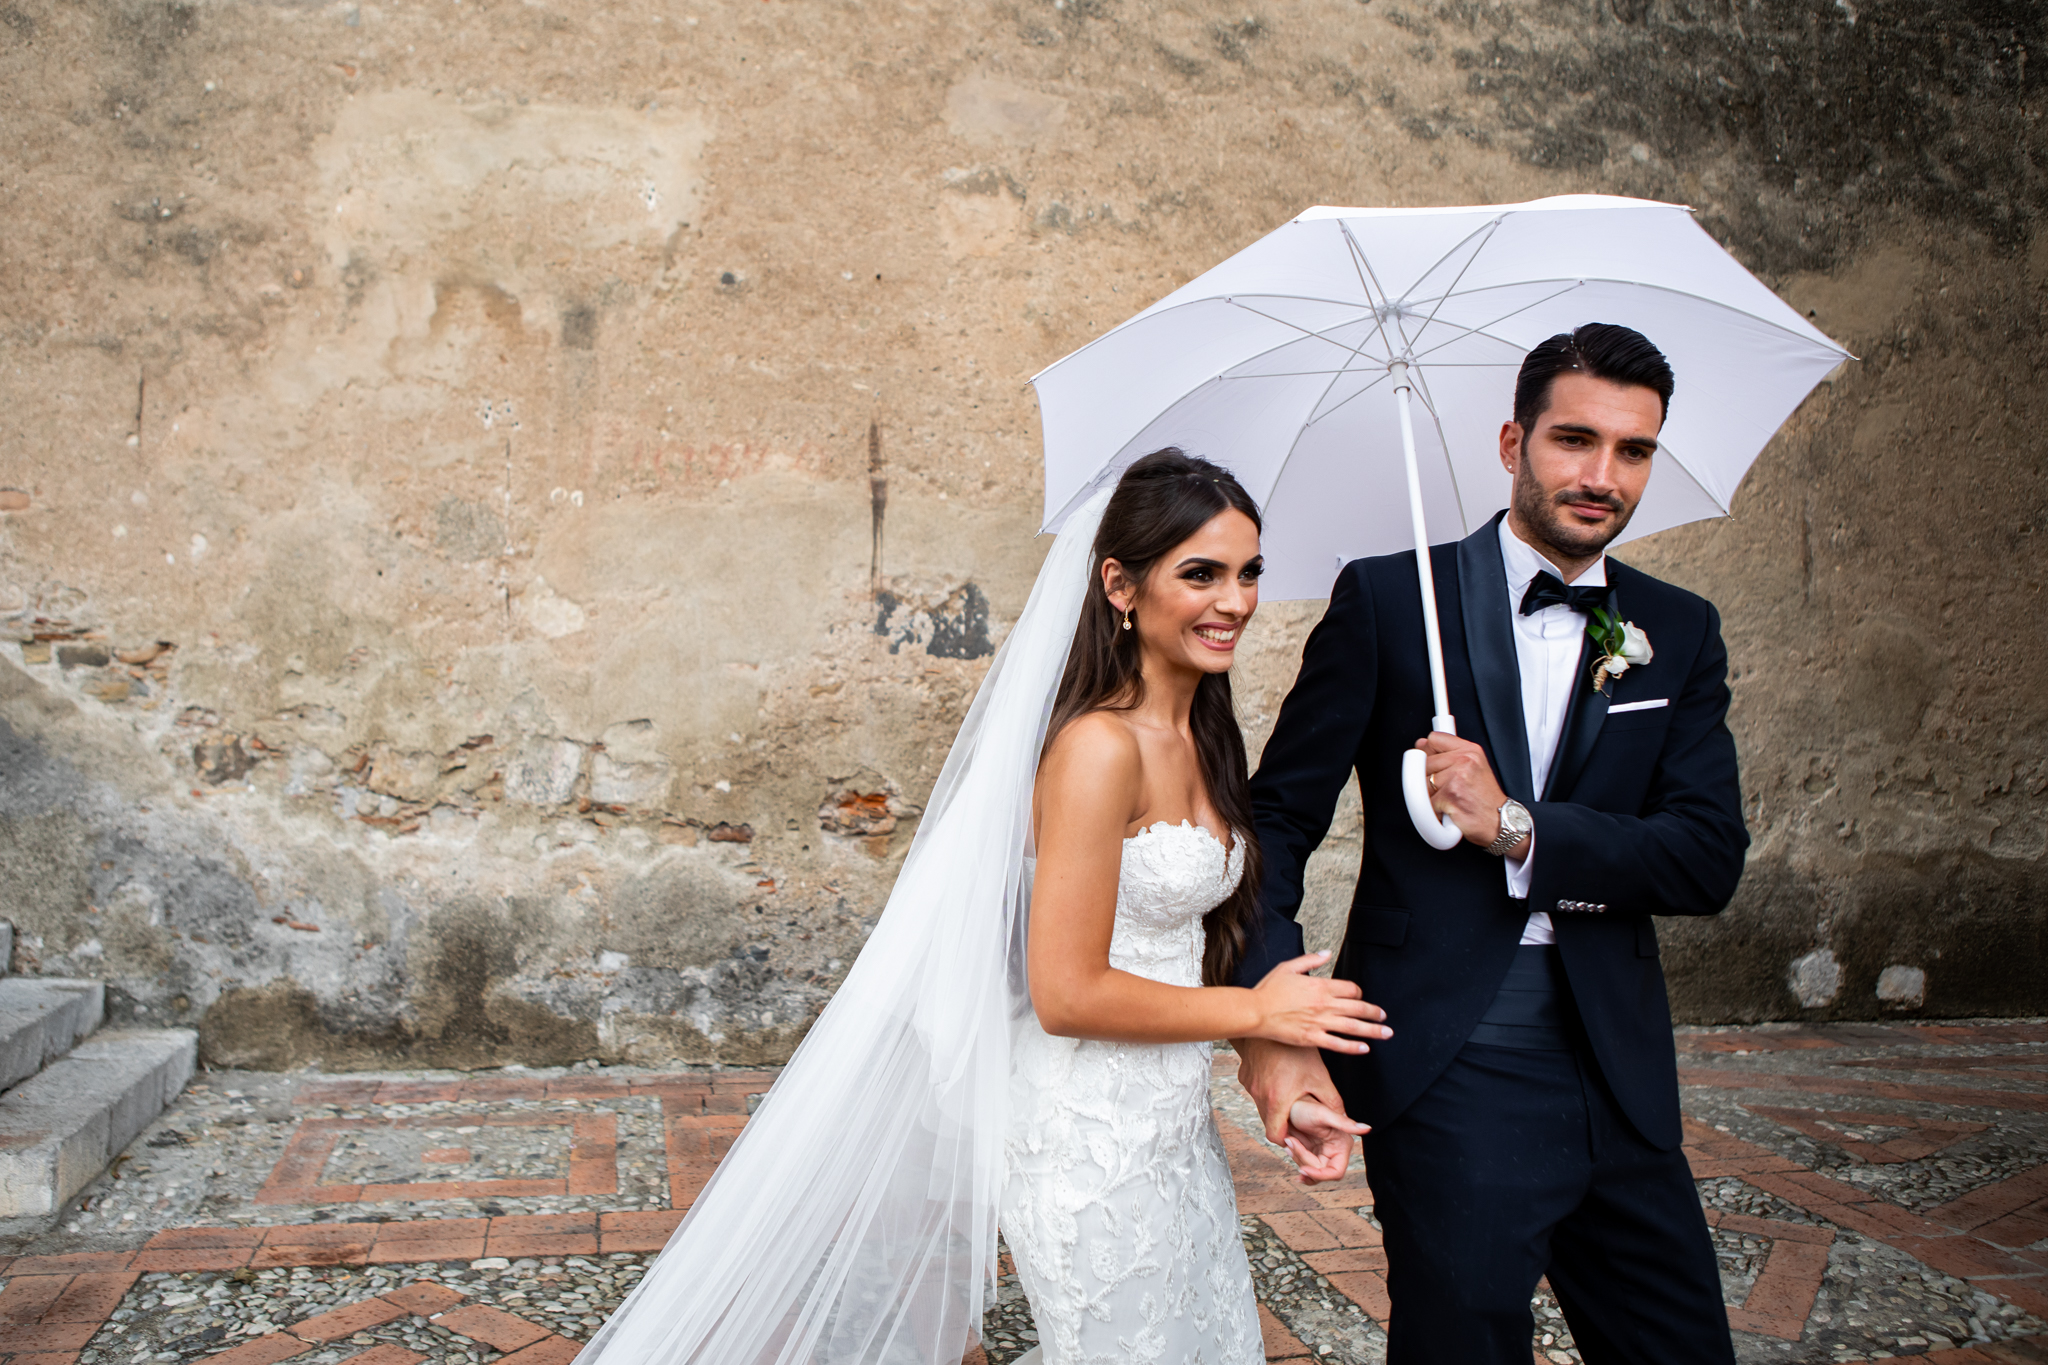 Best-wedding-photographer-in-Sicily-29.jpg